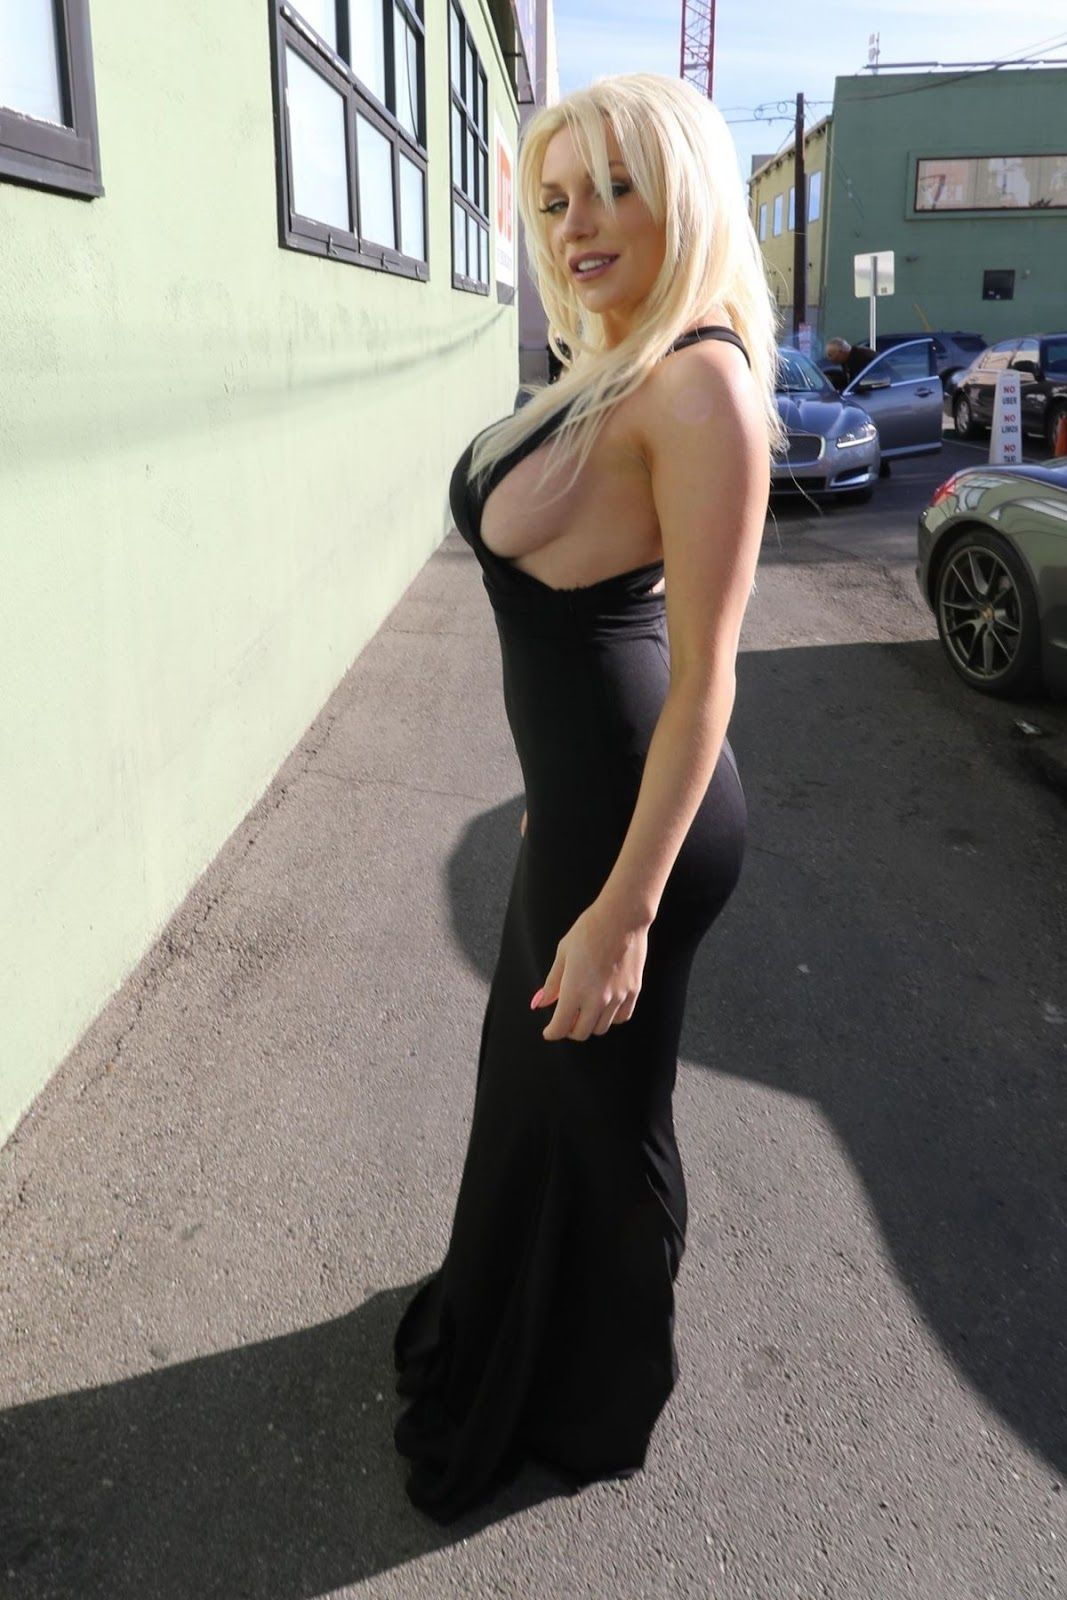 Courtney stodden shows off her boobs and butt onlyfans 5 pics video nudes (75 photos), Feet Celebrity image